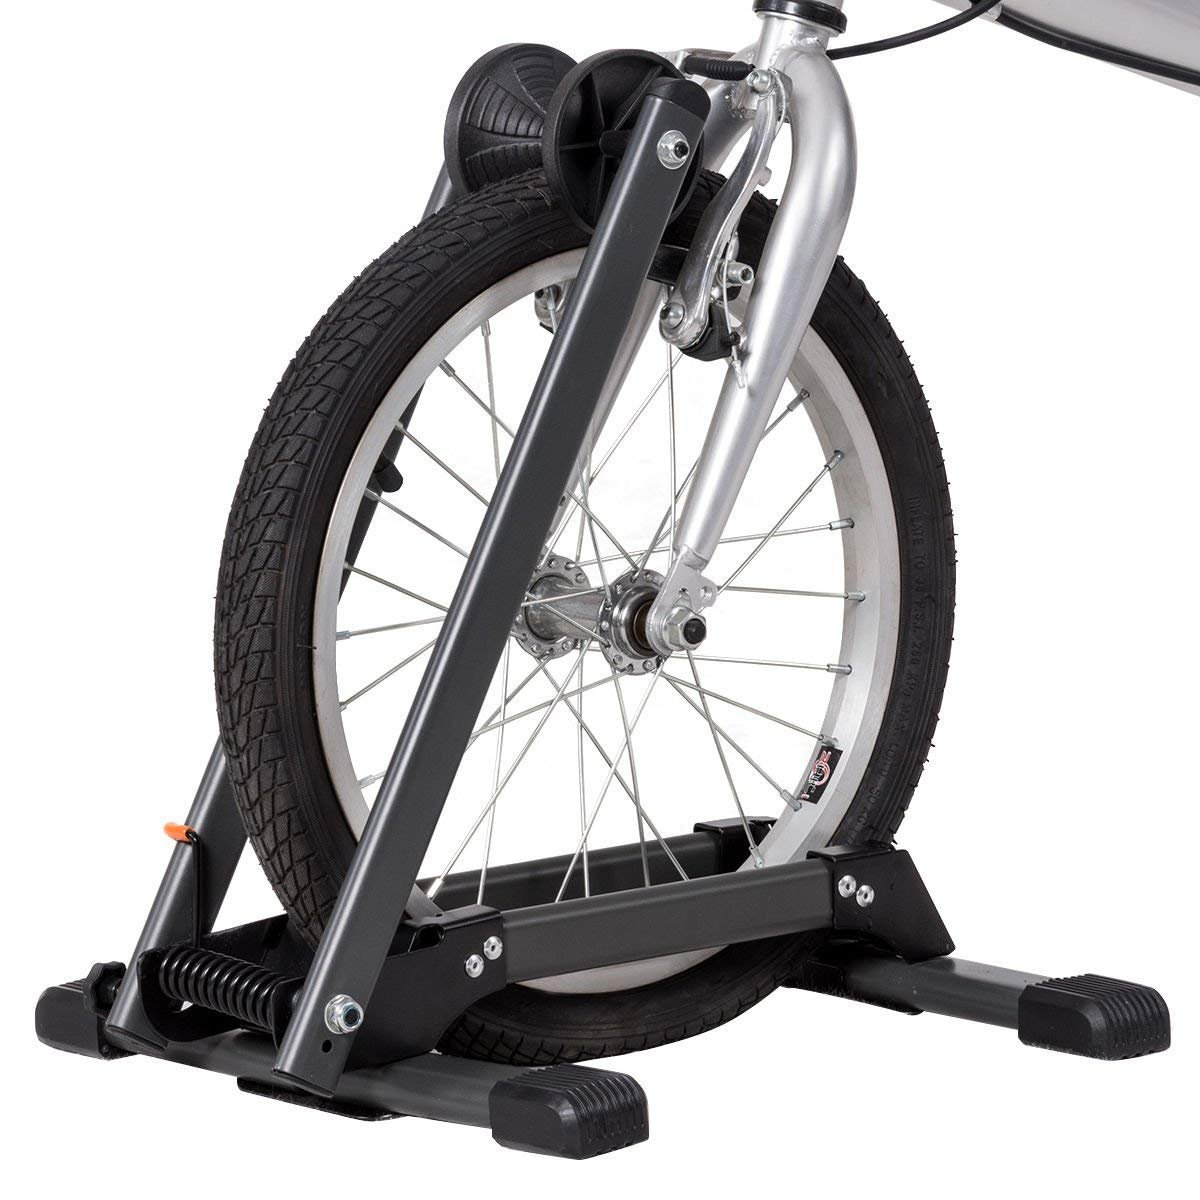 Toolsempire Foldable Bicycle Floor Parking Rack Bike Storage Stand Wheel Holder for Indoor Home Garage